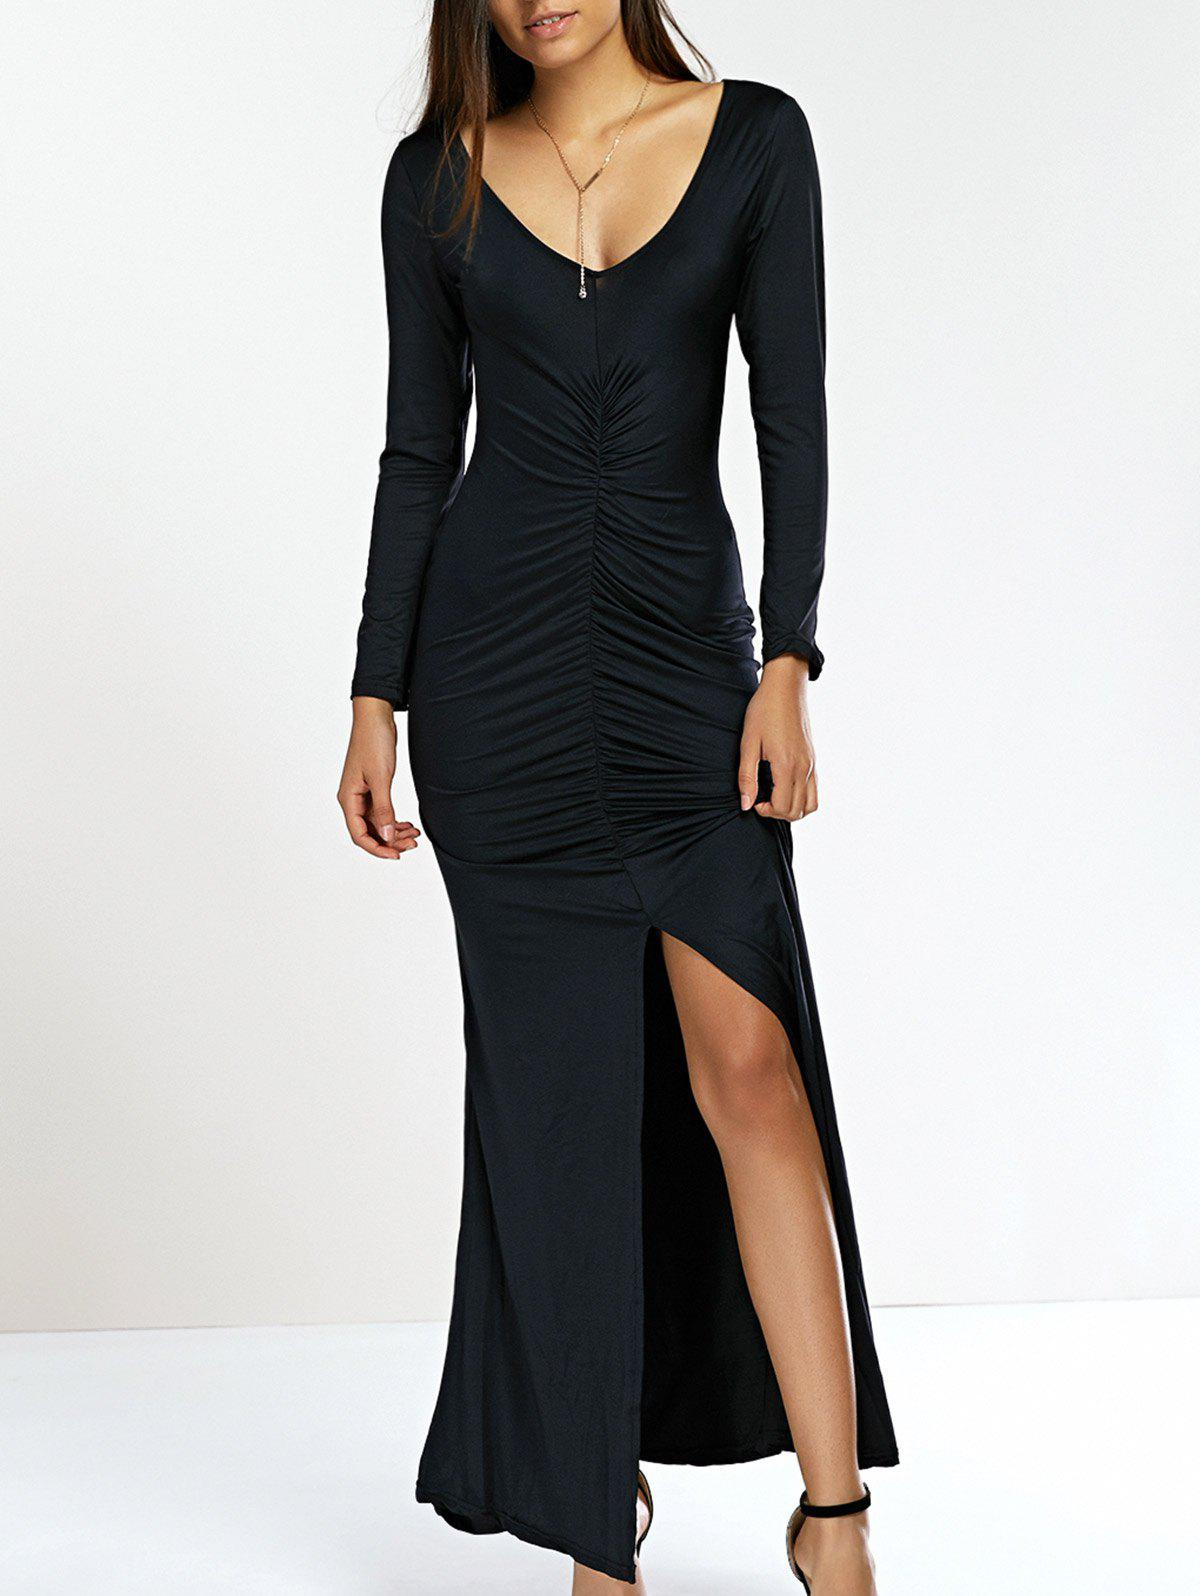 Plunge Neck High Slit Sheath Mermaid Dress - BLACK L